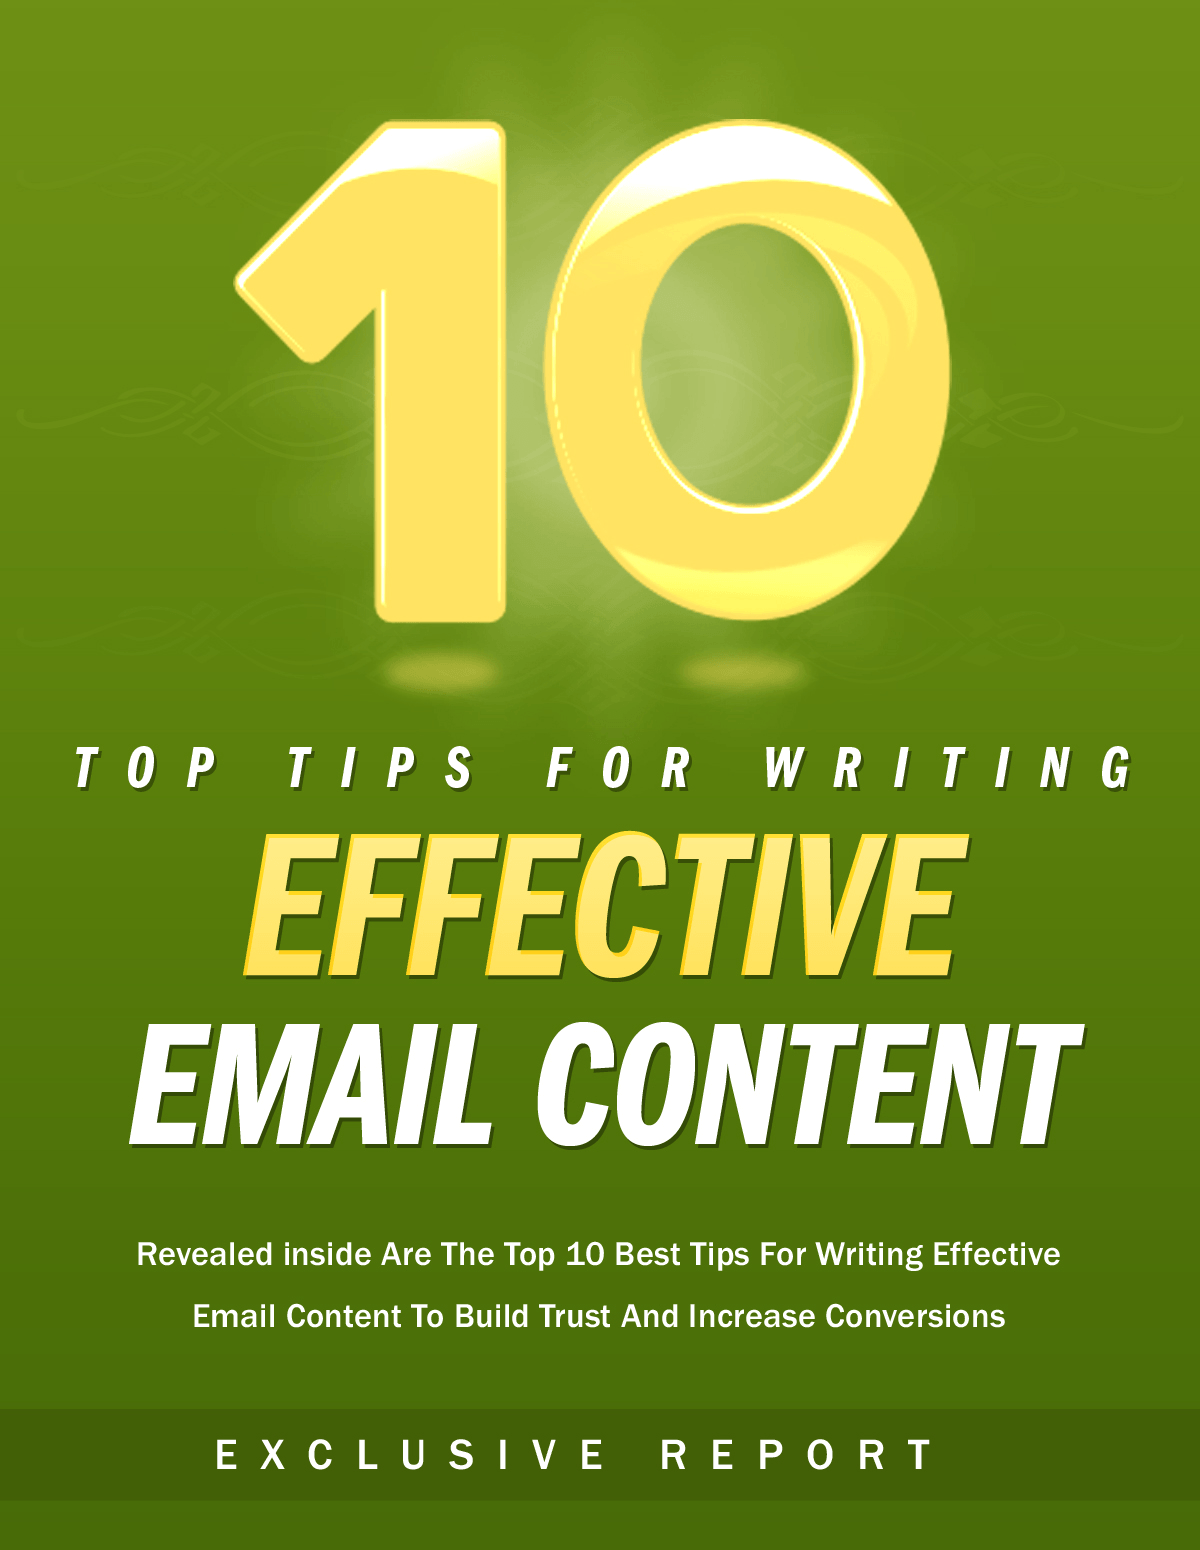 10 tips for effective copywriting of emails - Top 15 Best & Easy Email Tips That Raise Conversion Rates & More Training